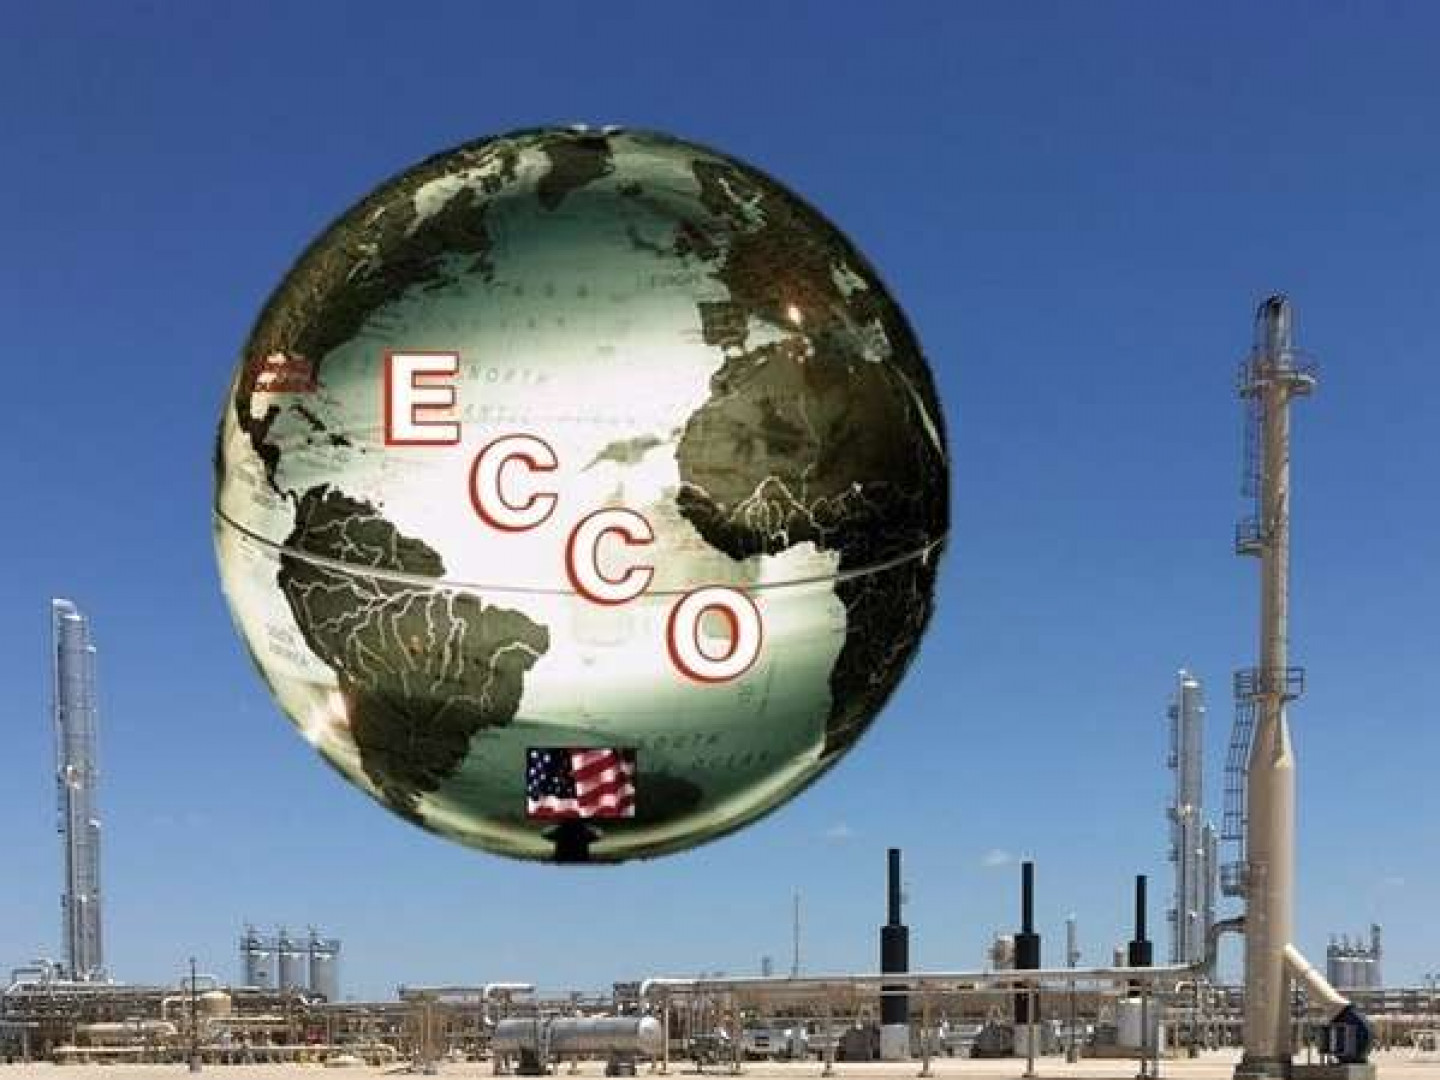 ecco services inc